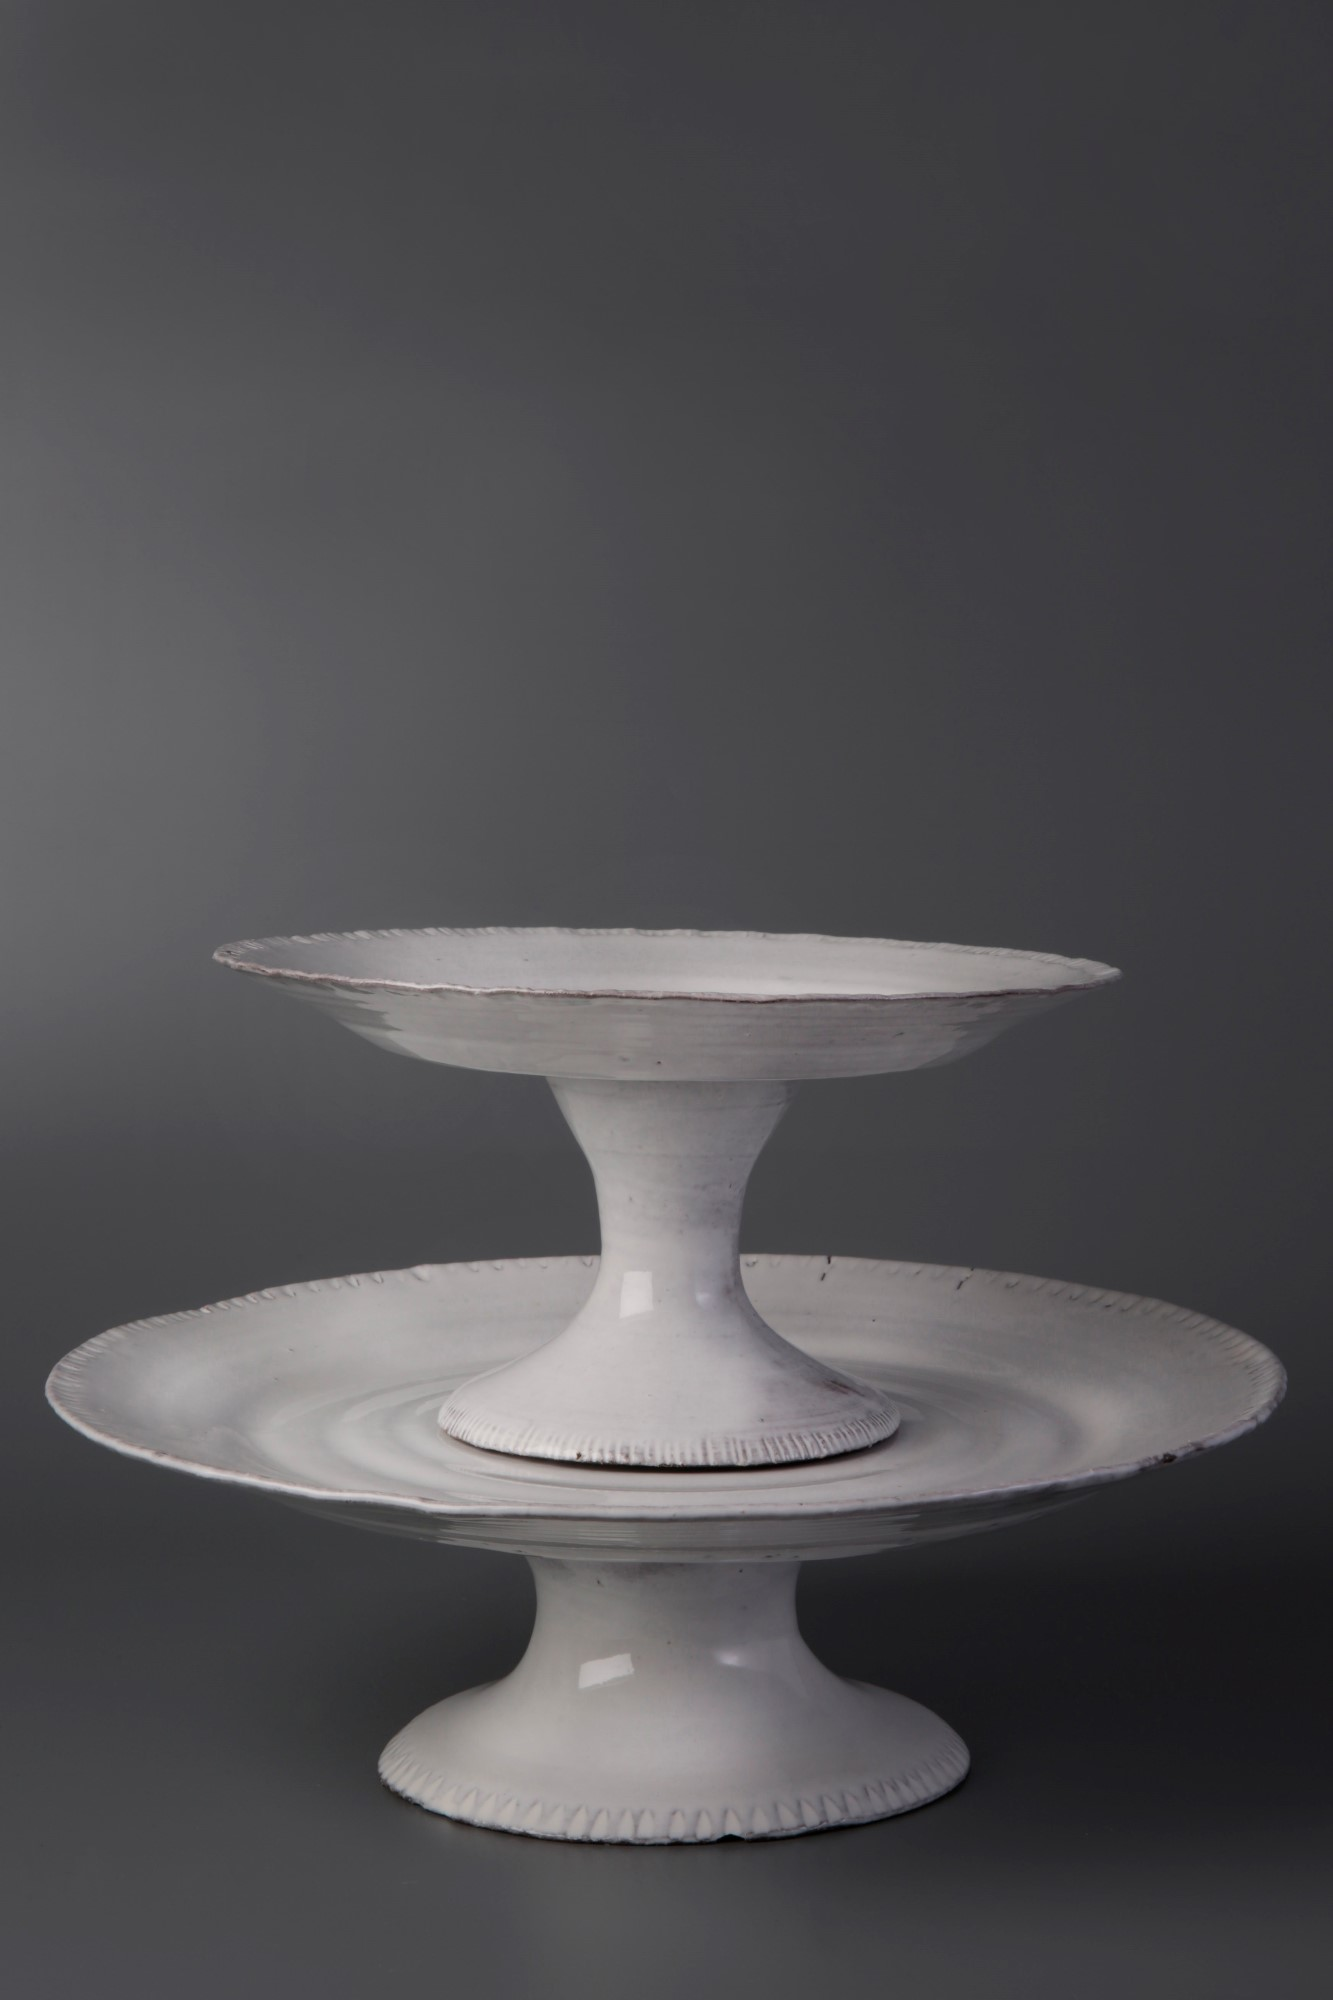 Footed dish M. € 140.00 Footed dish L. € 160.00